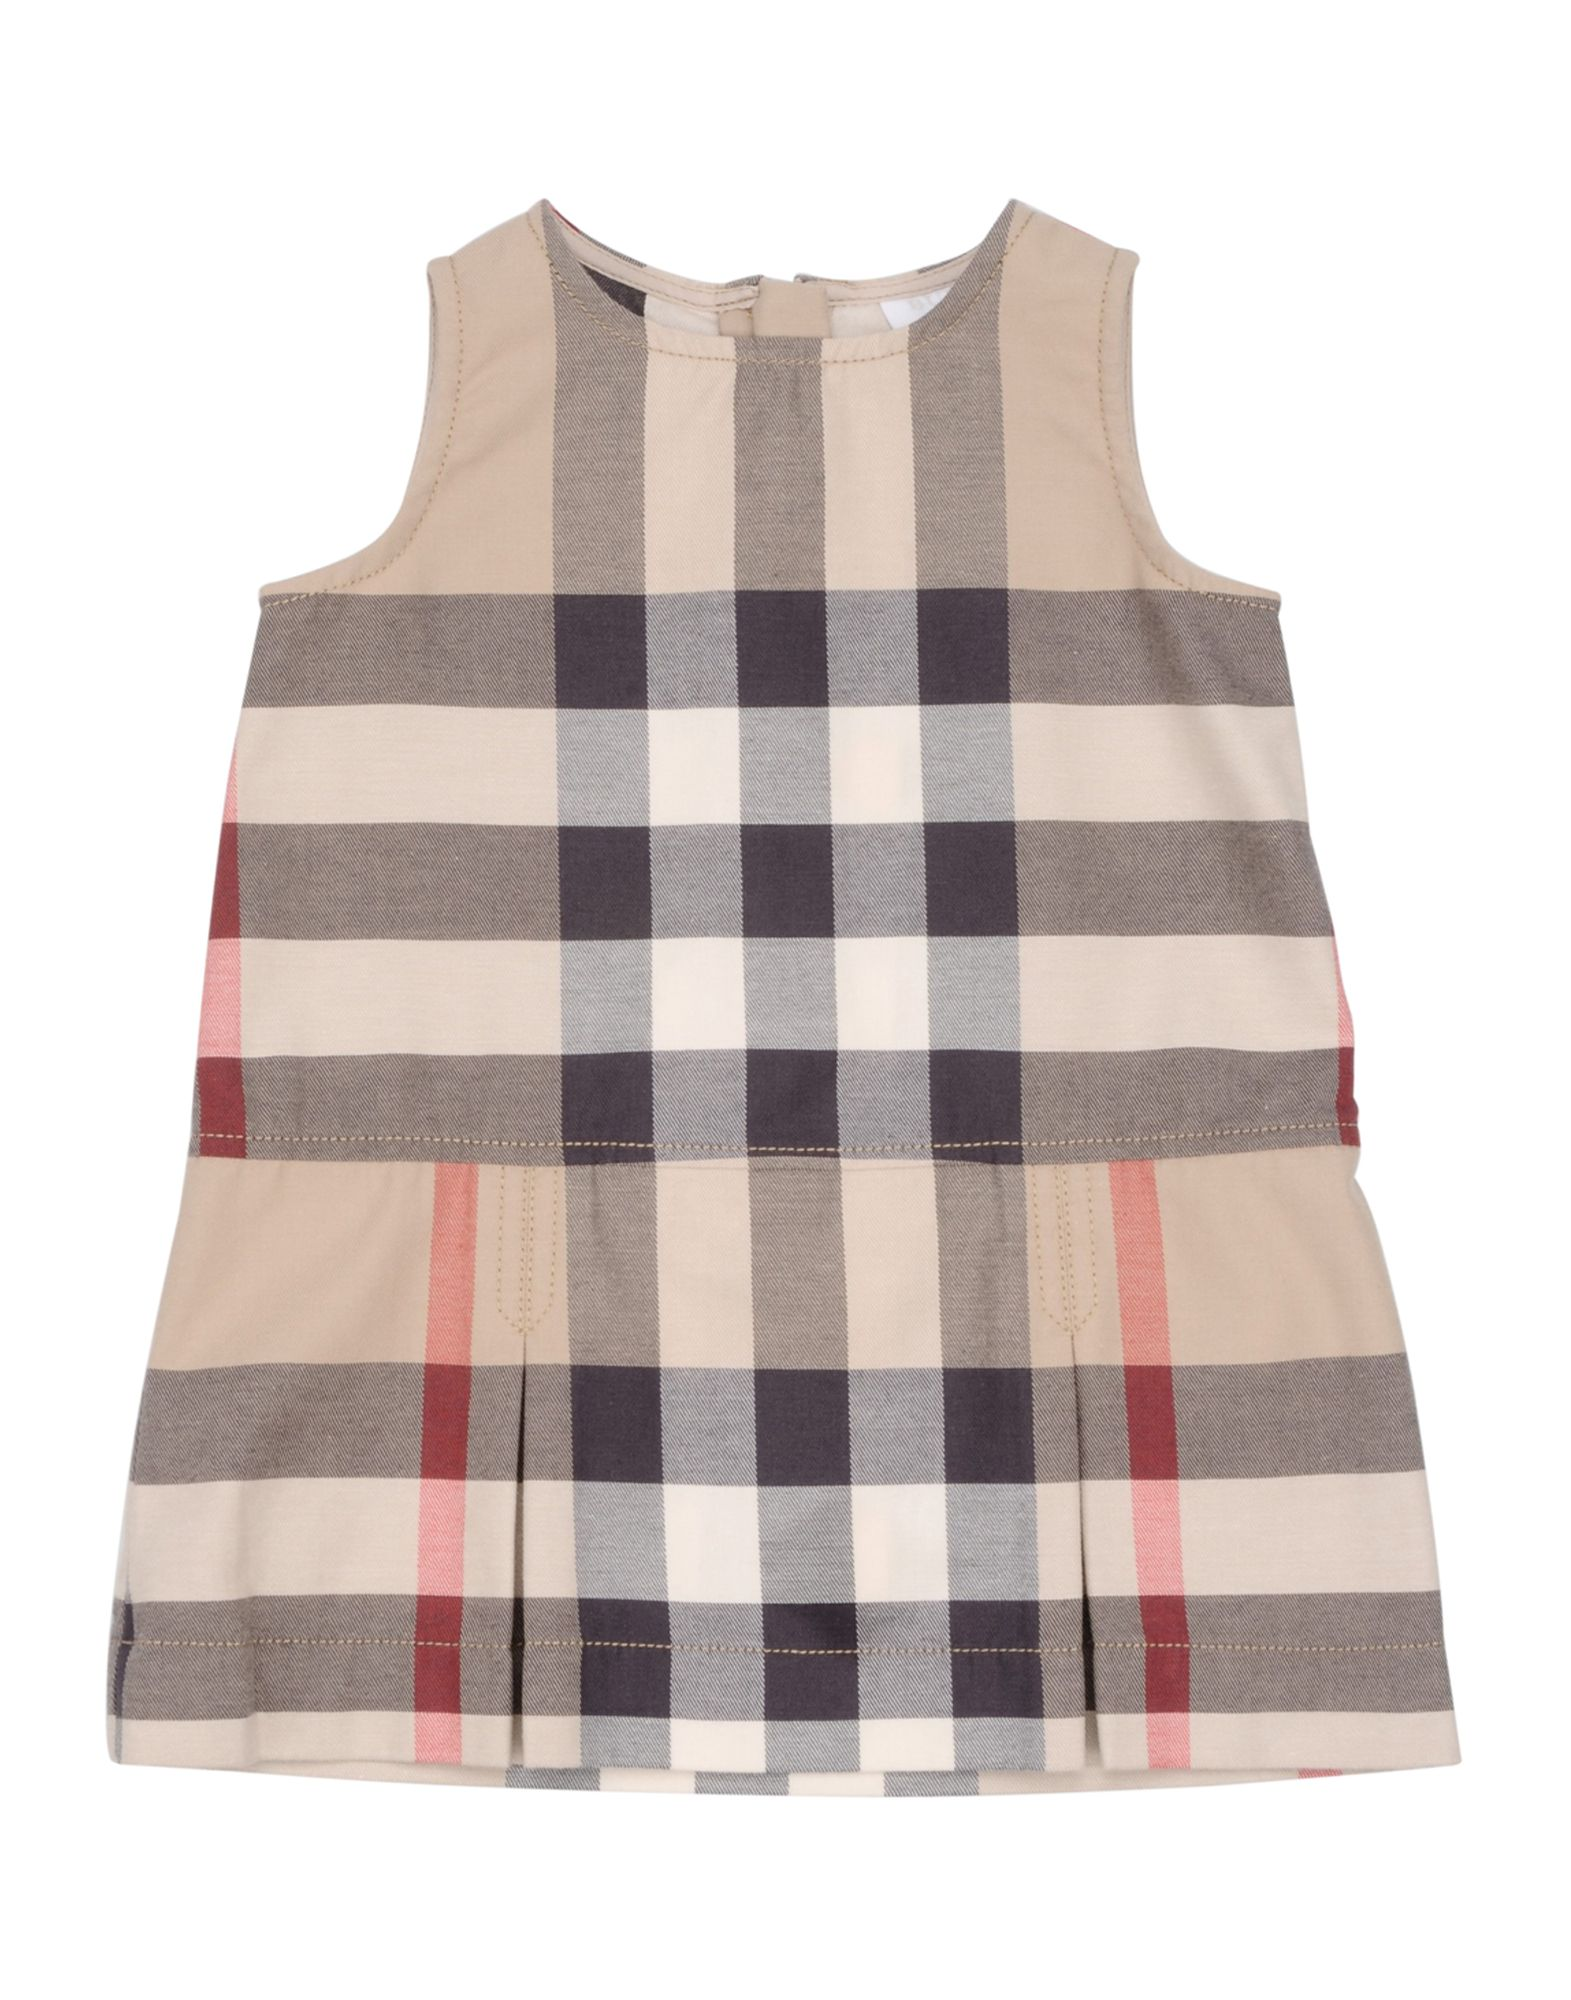 Burberry Dress Girl 0 24 months online on YOOX United States